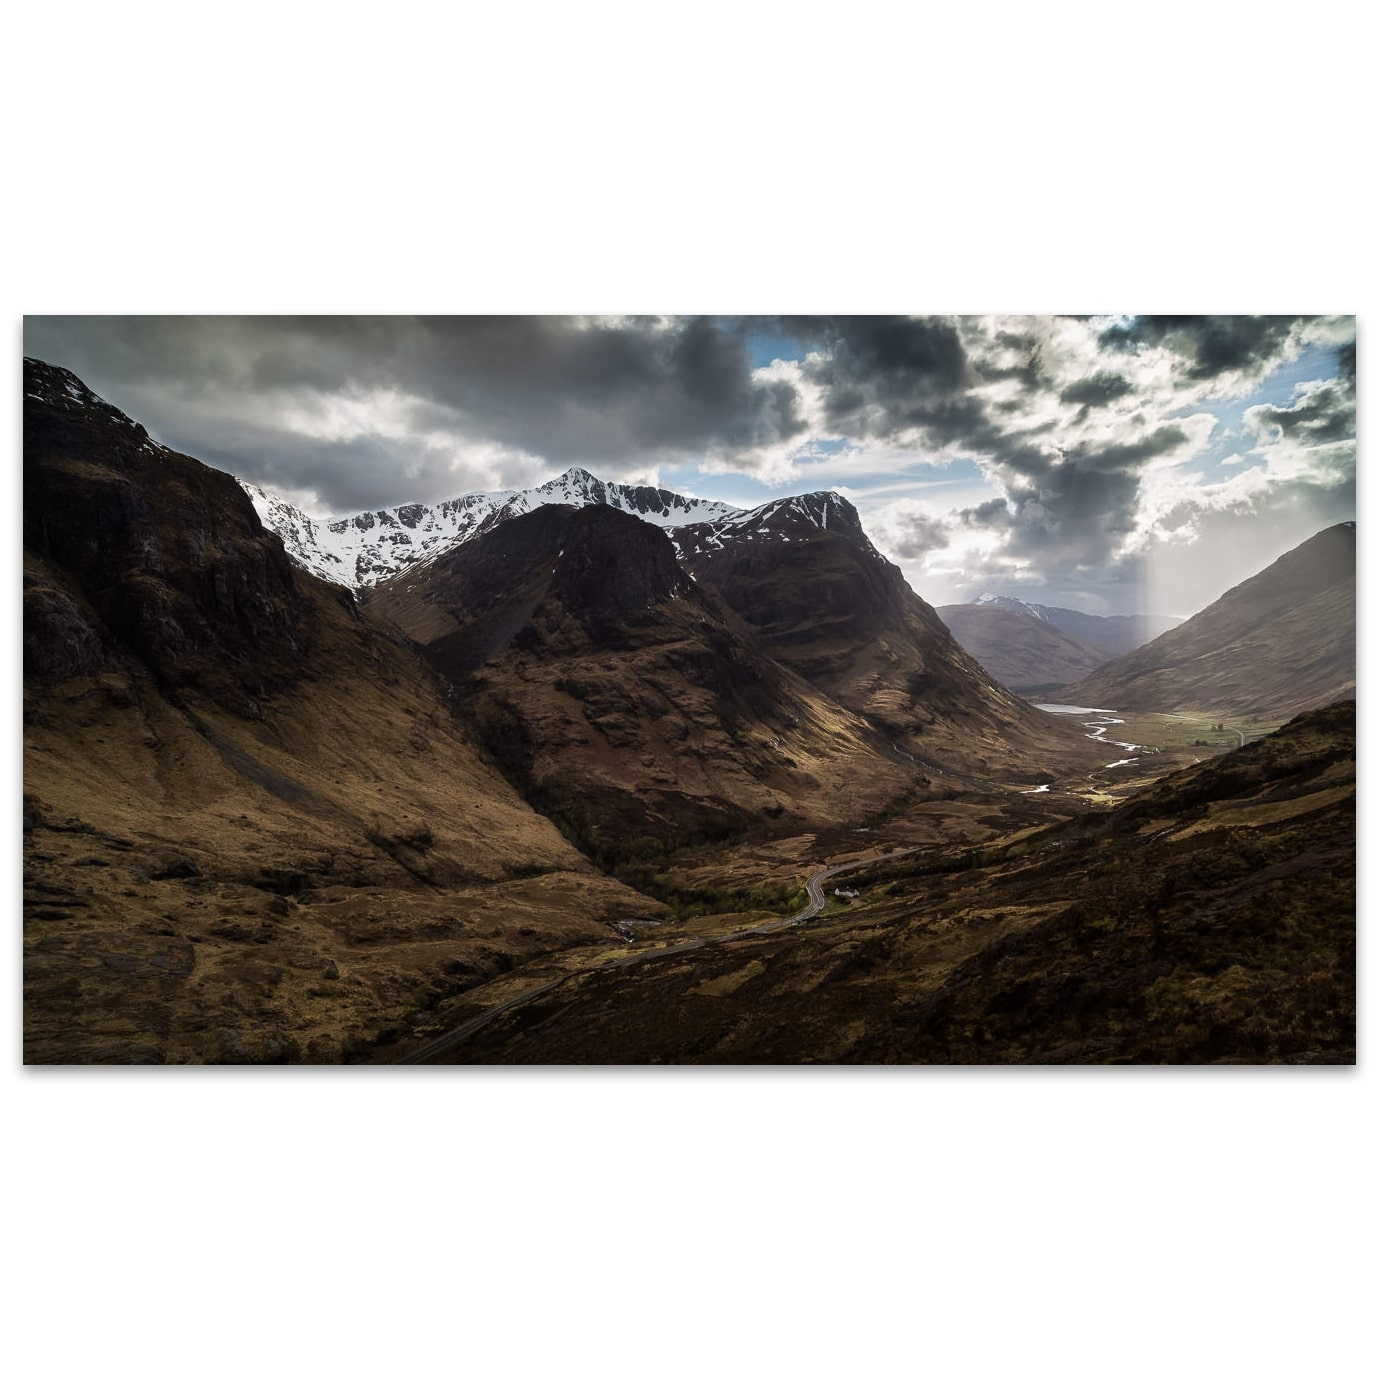 The sisters of Glencoe in the Scottish Highlands